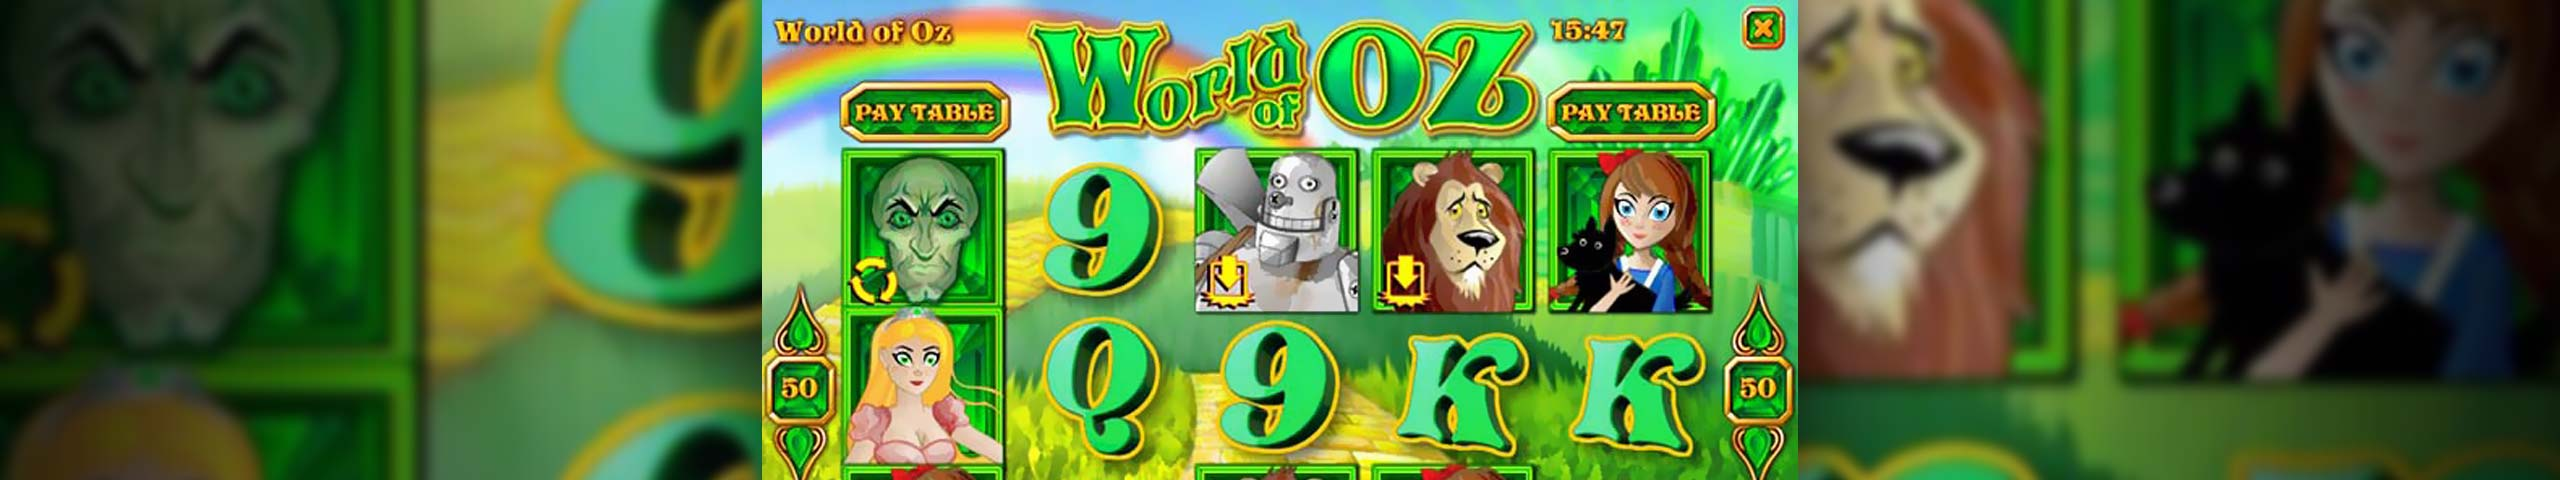 Spelautomater World of Oz, Rival Gaming Slider - Wyrmspel.com